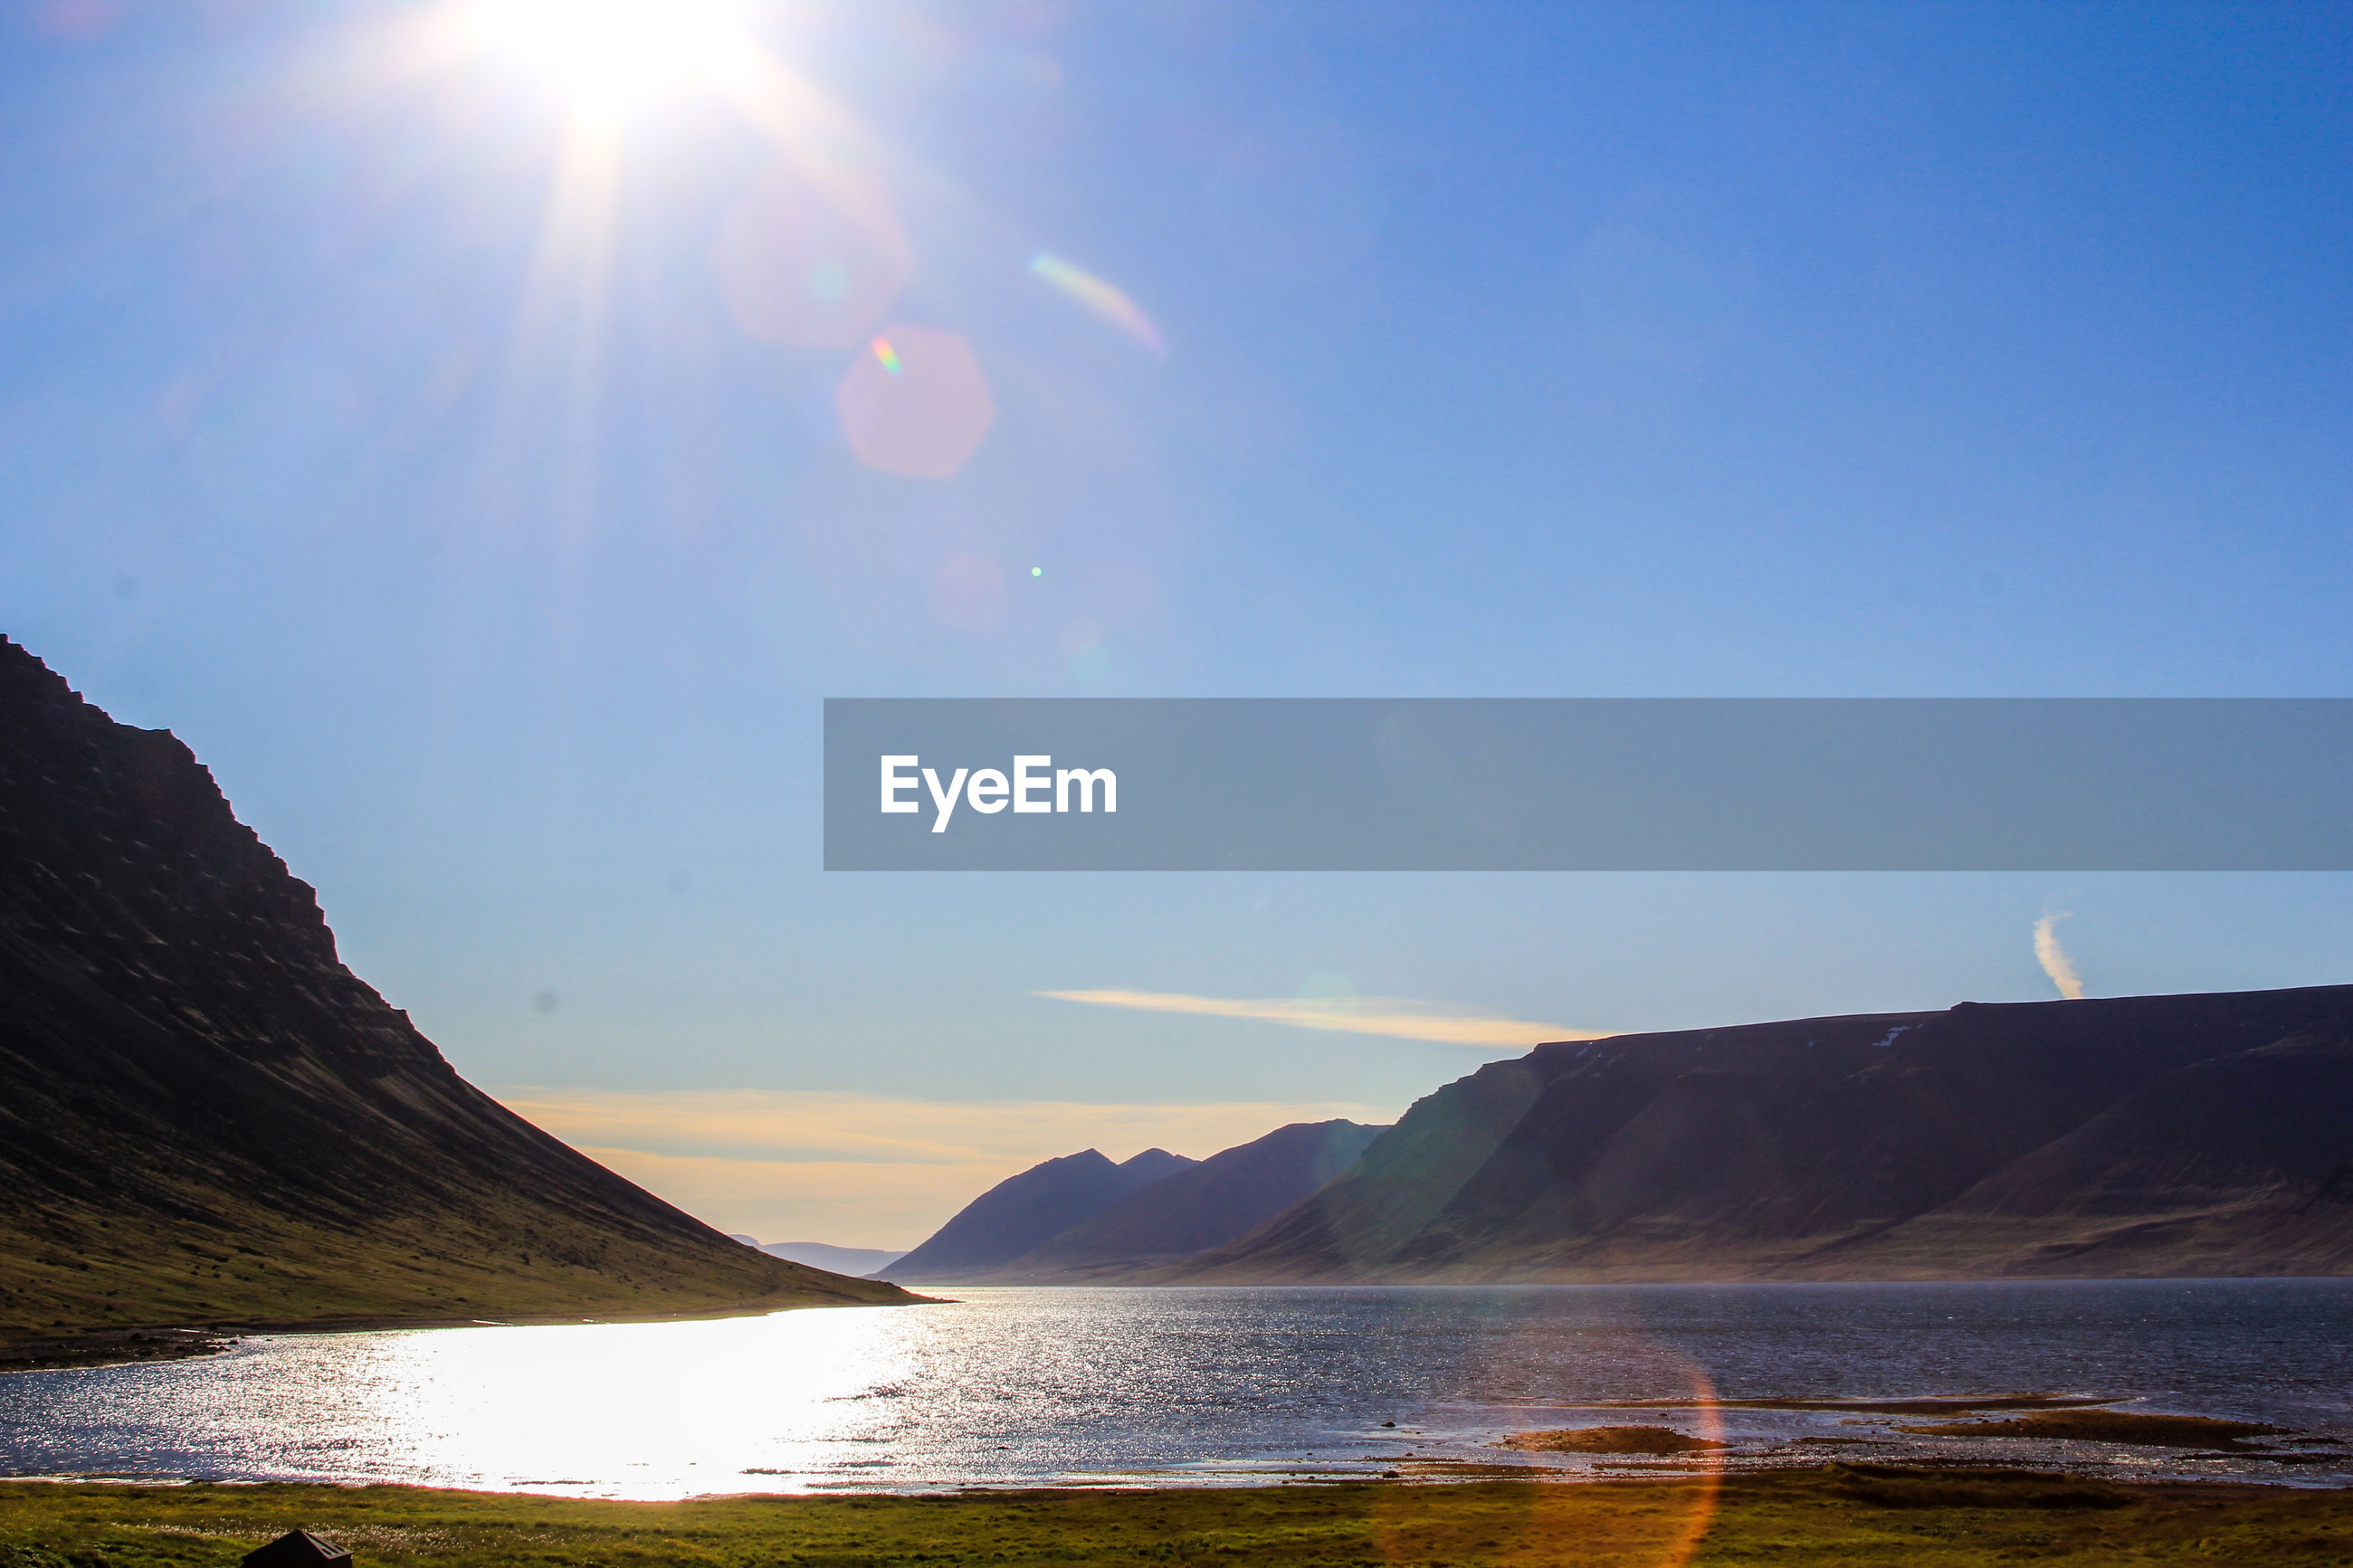 Scenic view of sun shining over lake and mountains